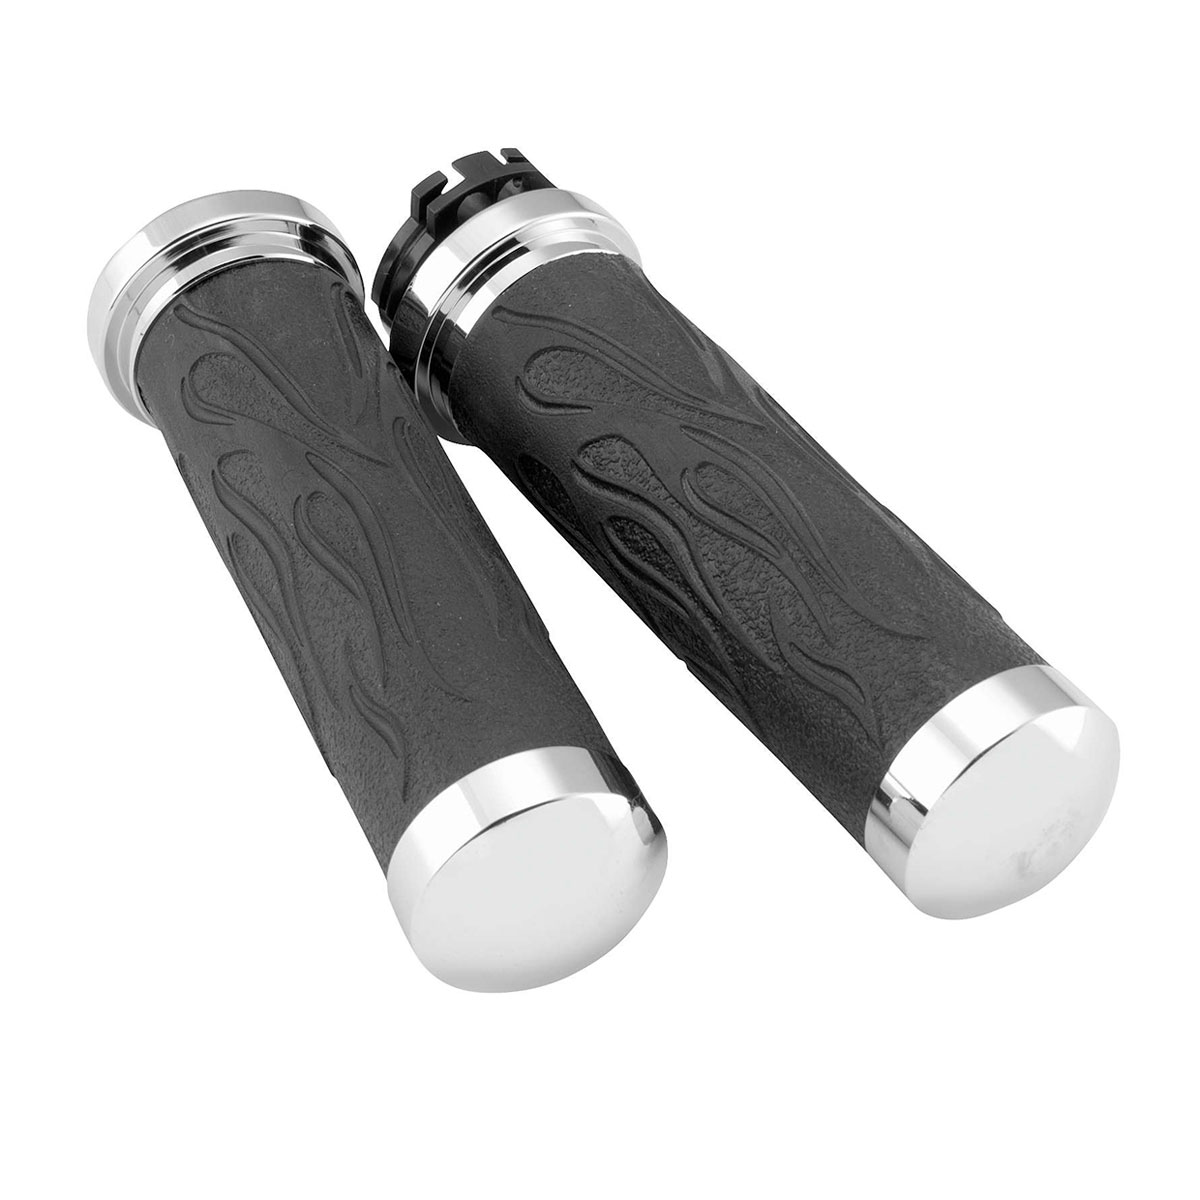 Avon Grips Chrome Flame Grips for Dual Cable Models